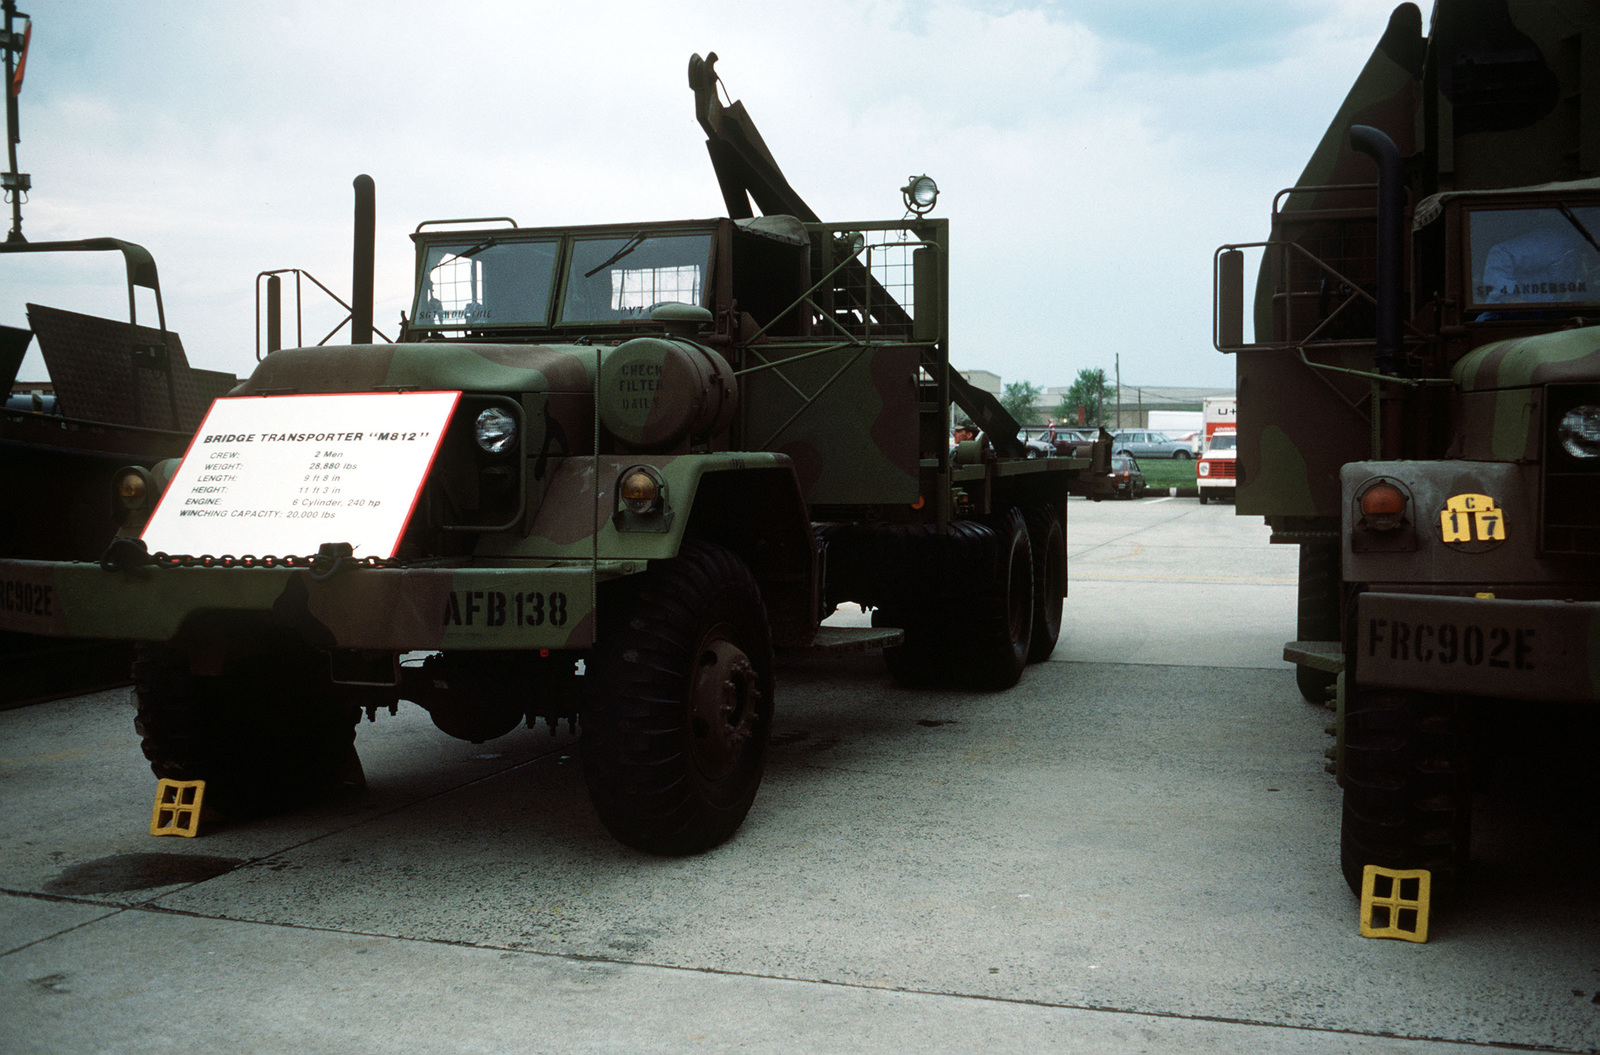 An Army M812 bridge transporter truck used to set up a